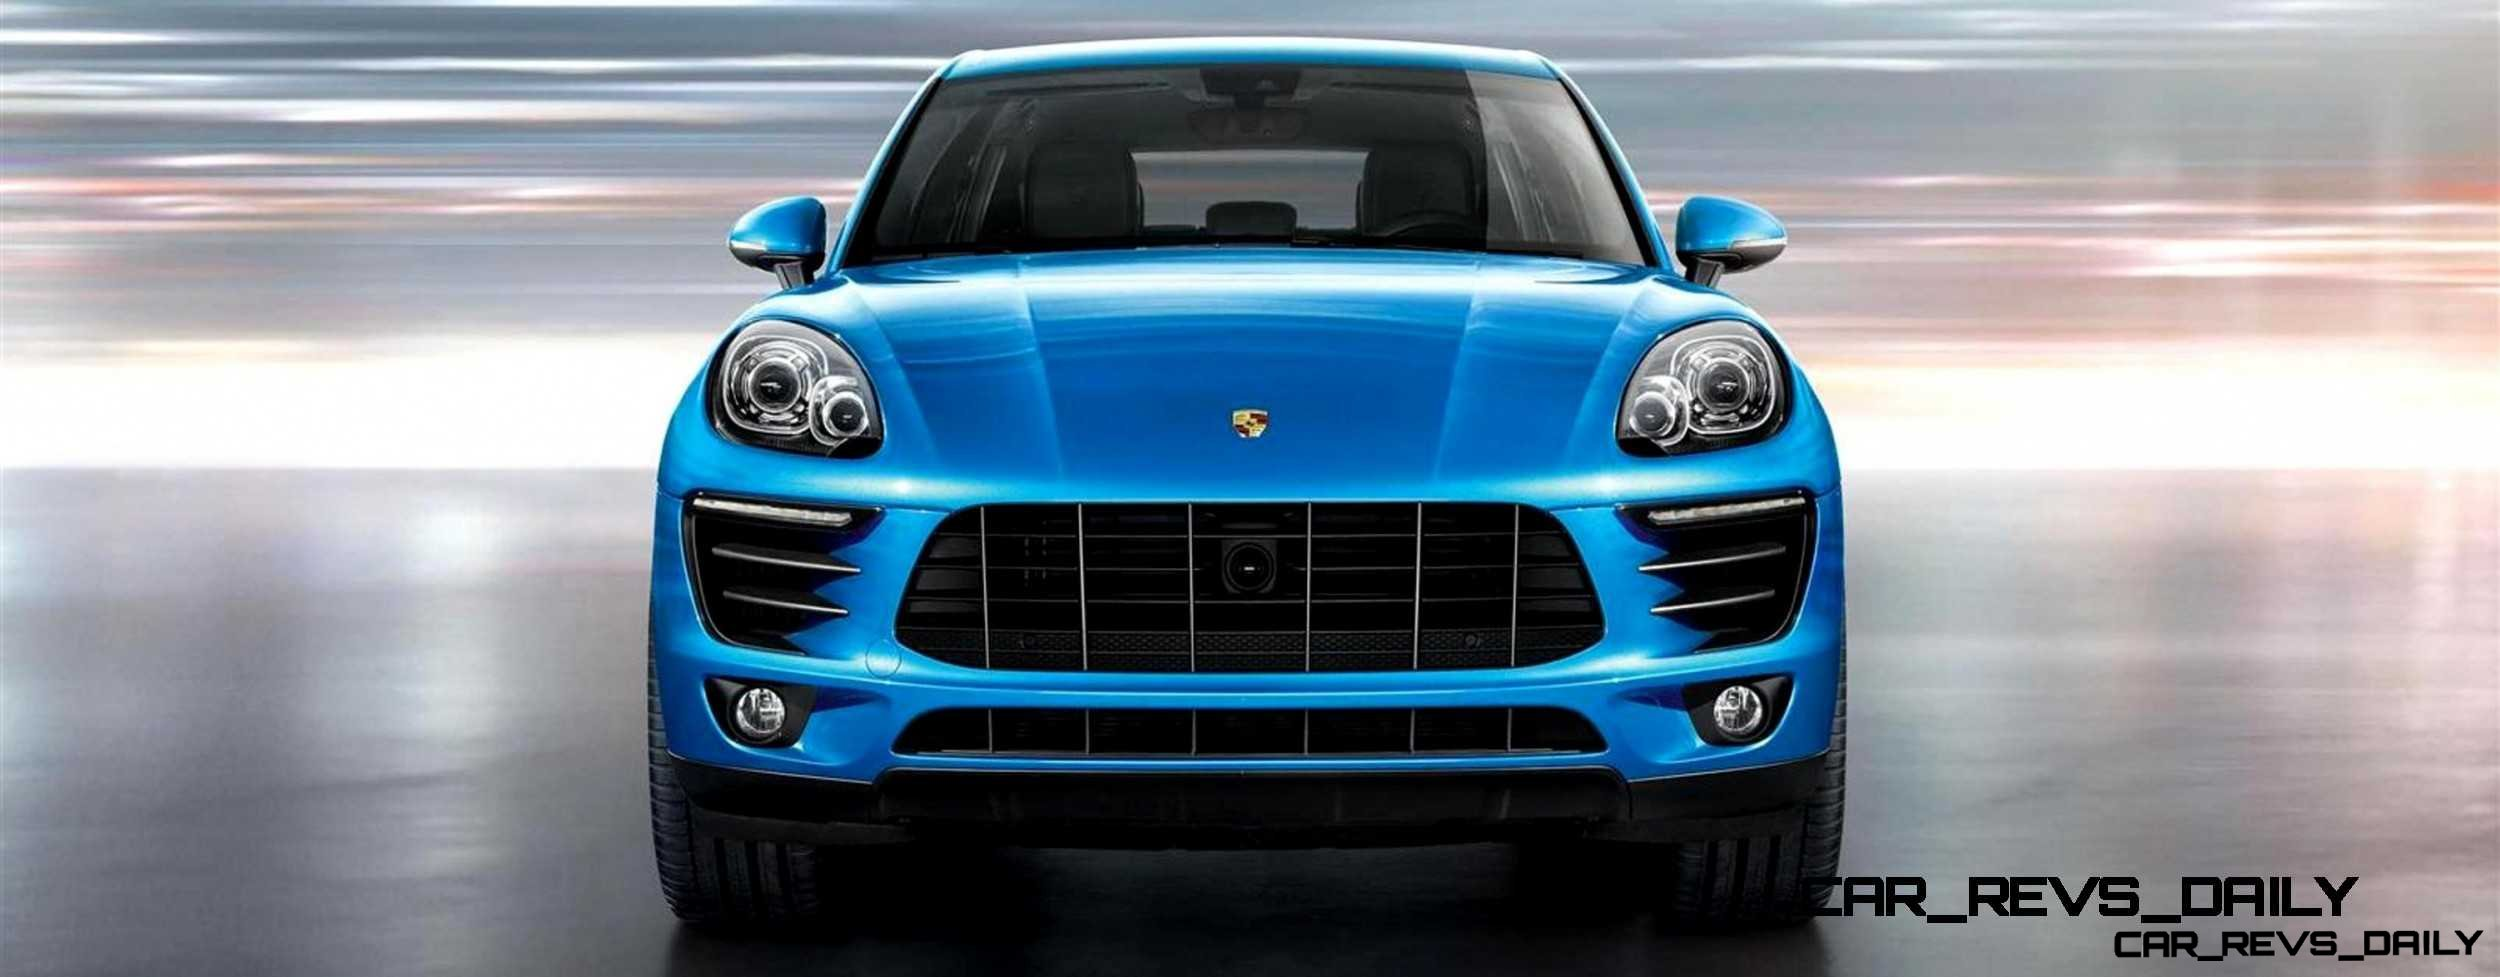 2015 Porsche Macan - Latest Images - CarRevsDaily.com 56